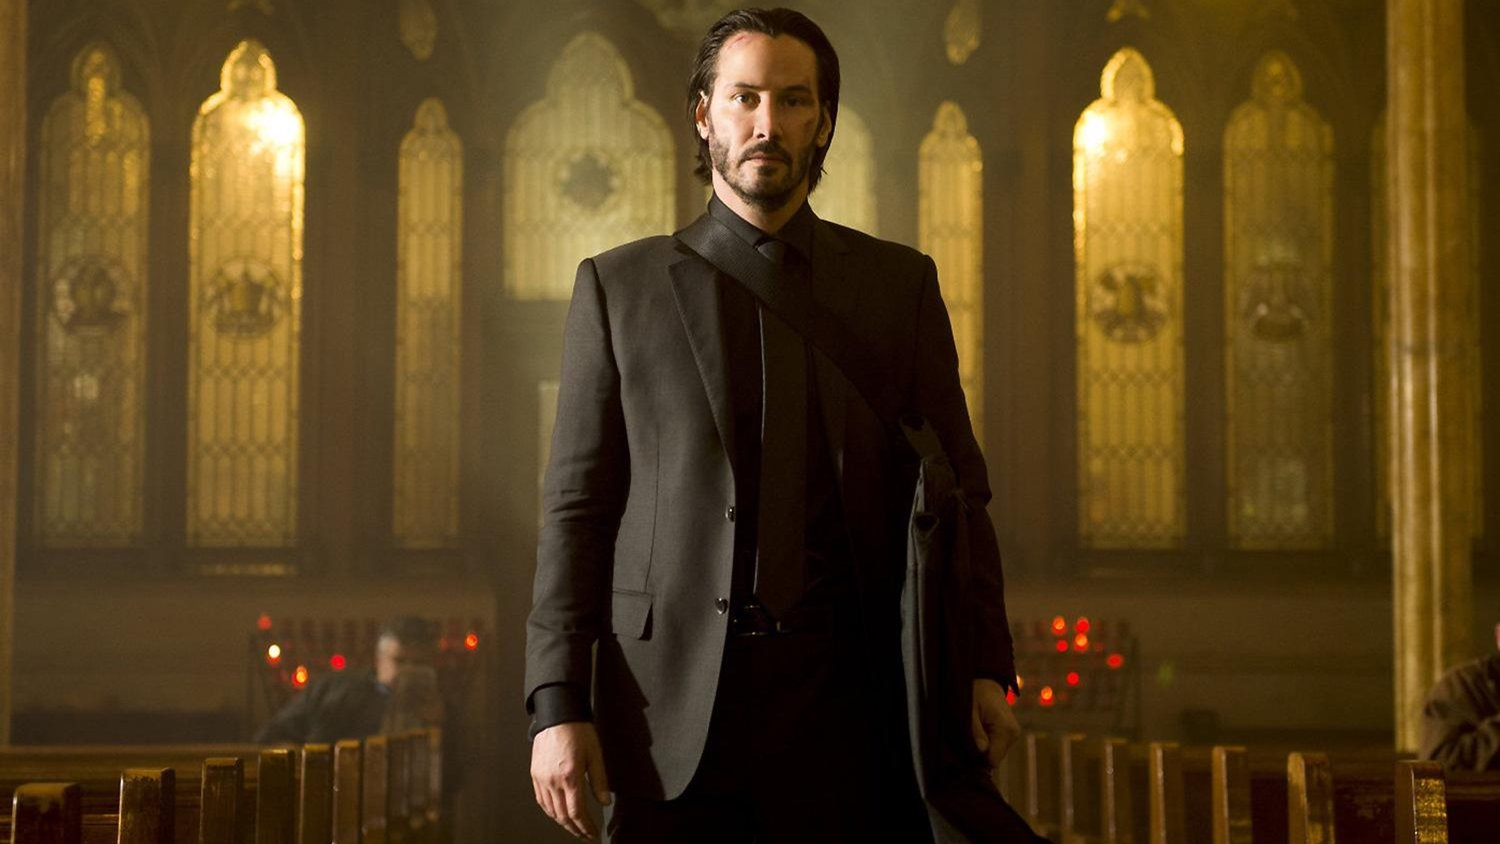 A JOHN WICK Prequel Series Is Being Considered by Lionsgate